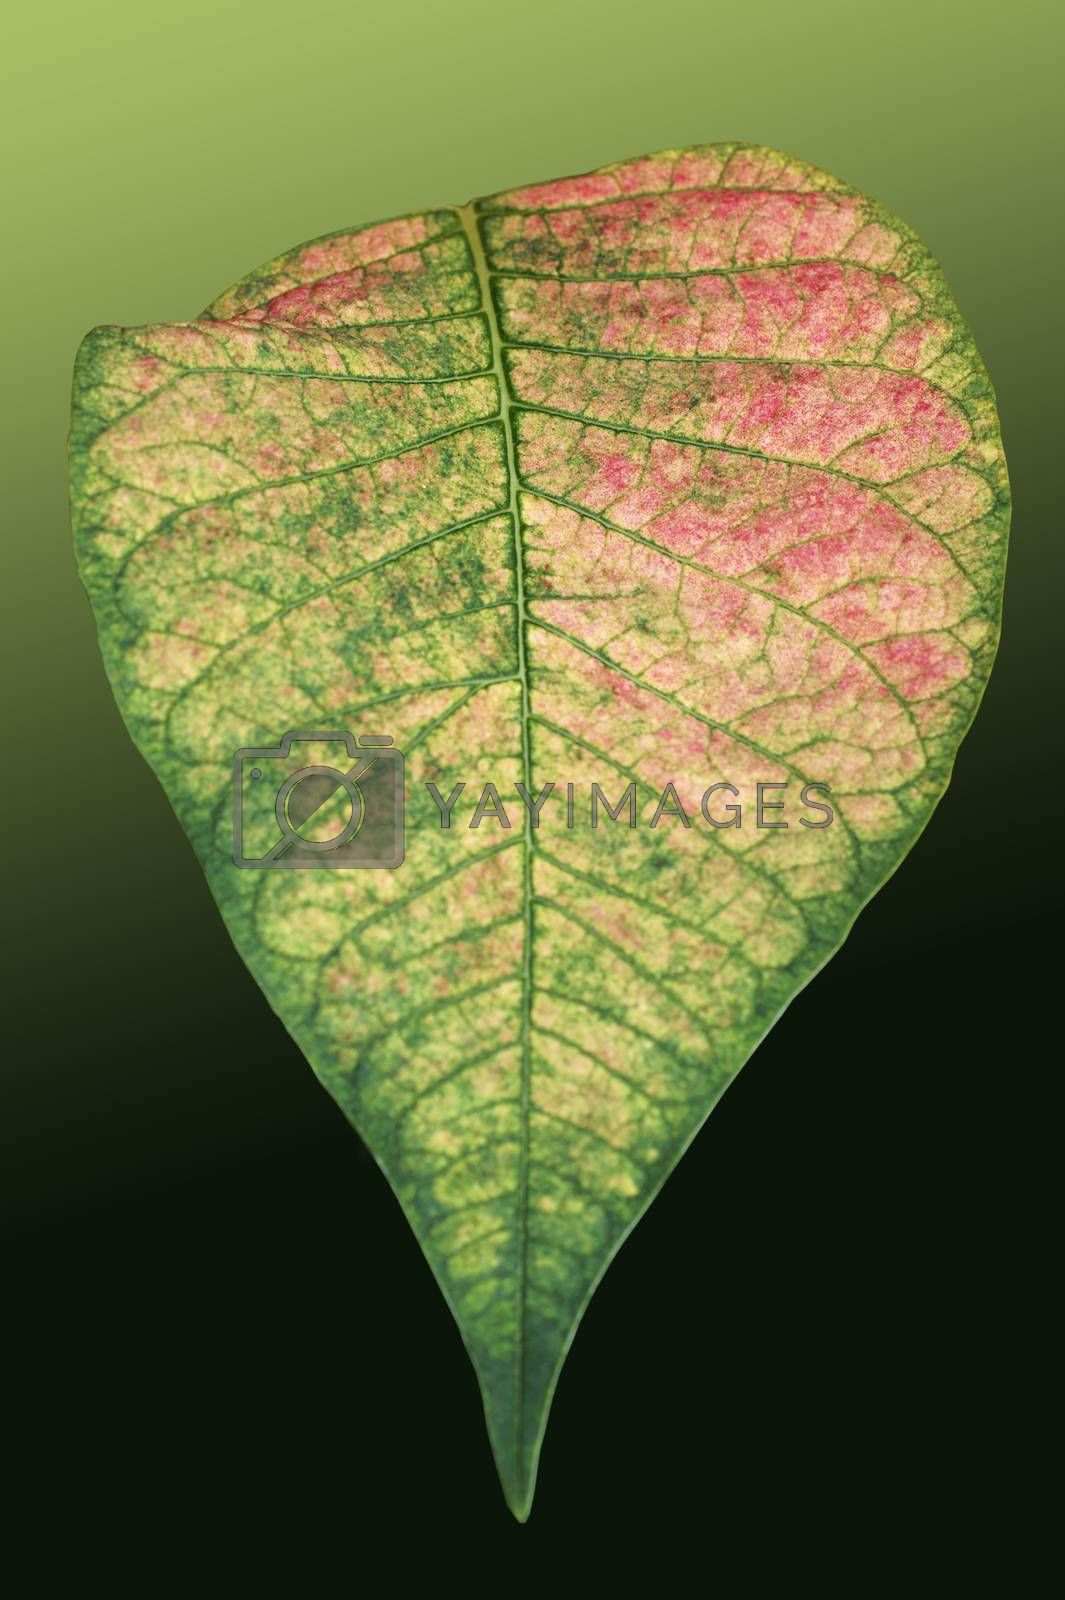 The closeup of the isolated leaf of a poinsettia with a distinctive pattern and color.